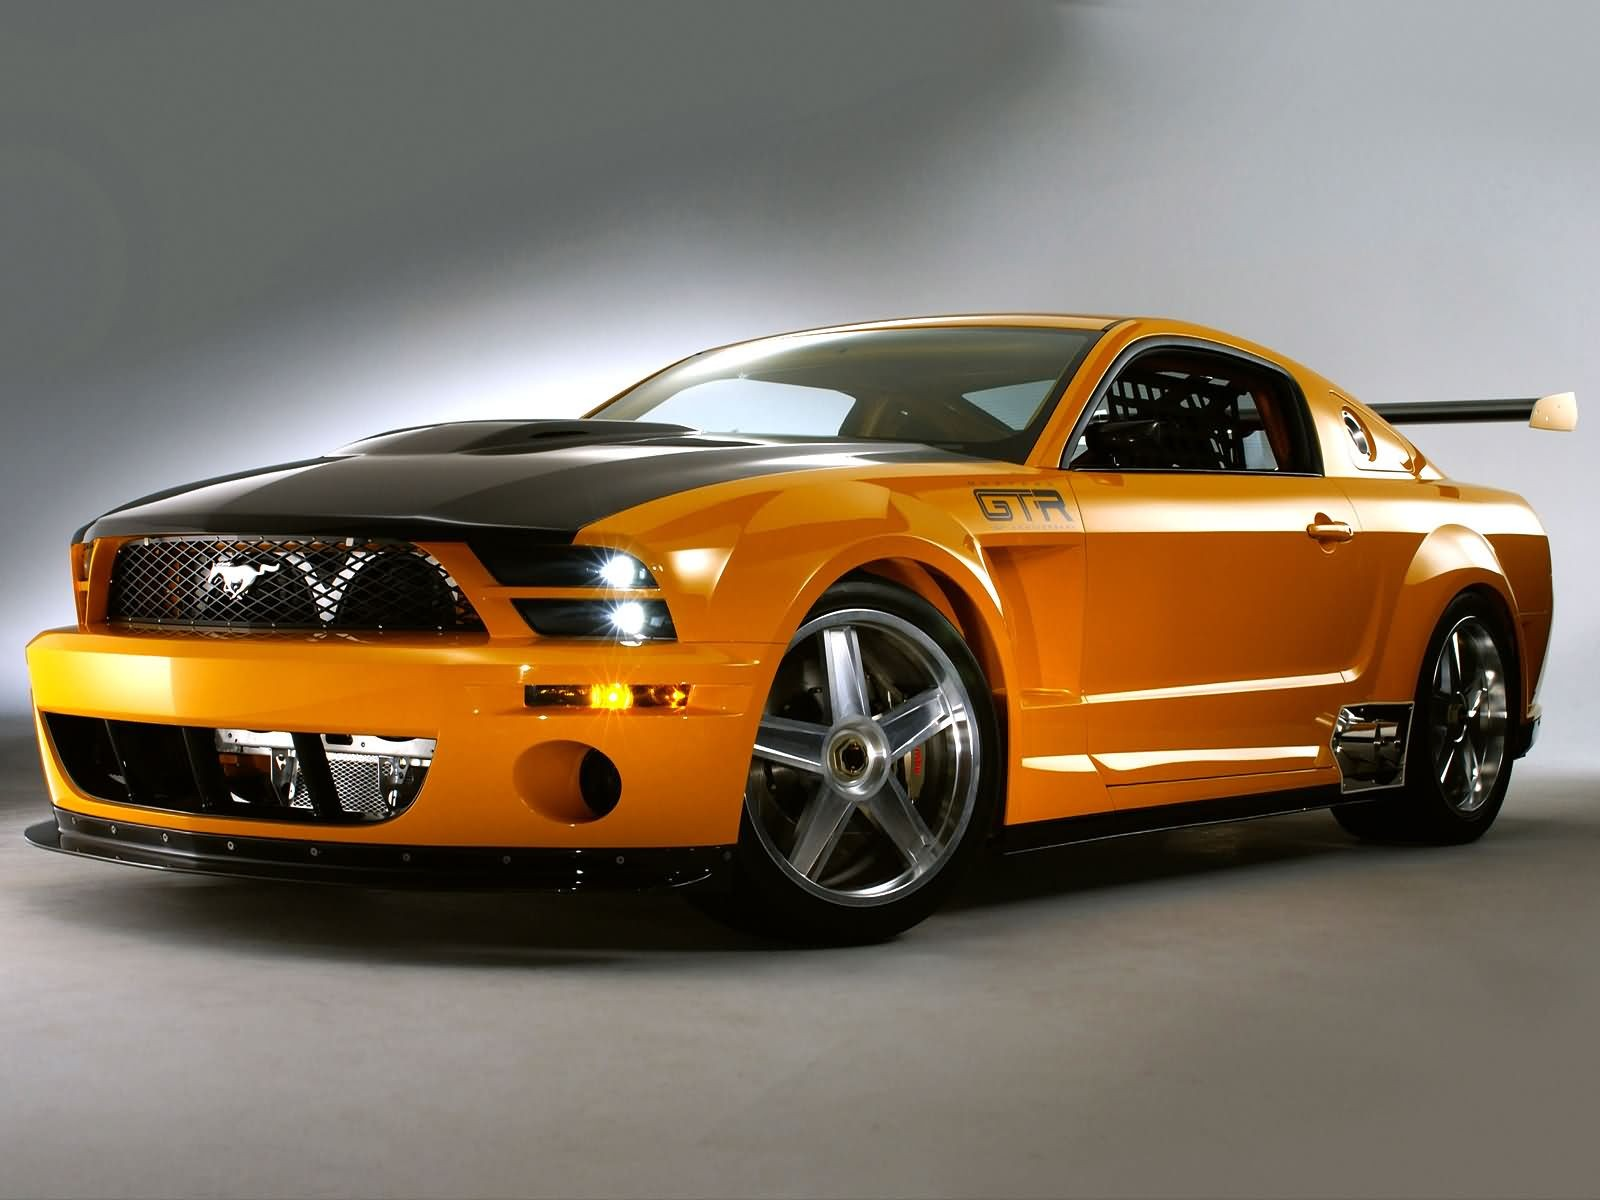 Best Collection of Mustang Wallpapers For Desktop Screens 1600x1200